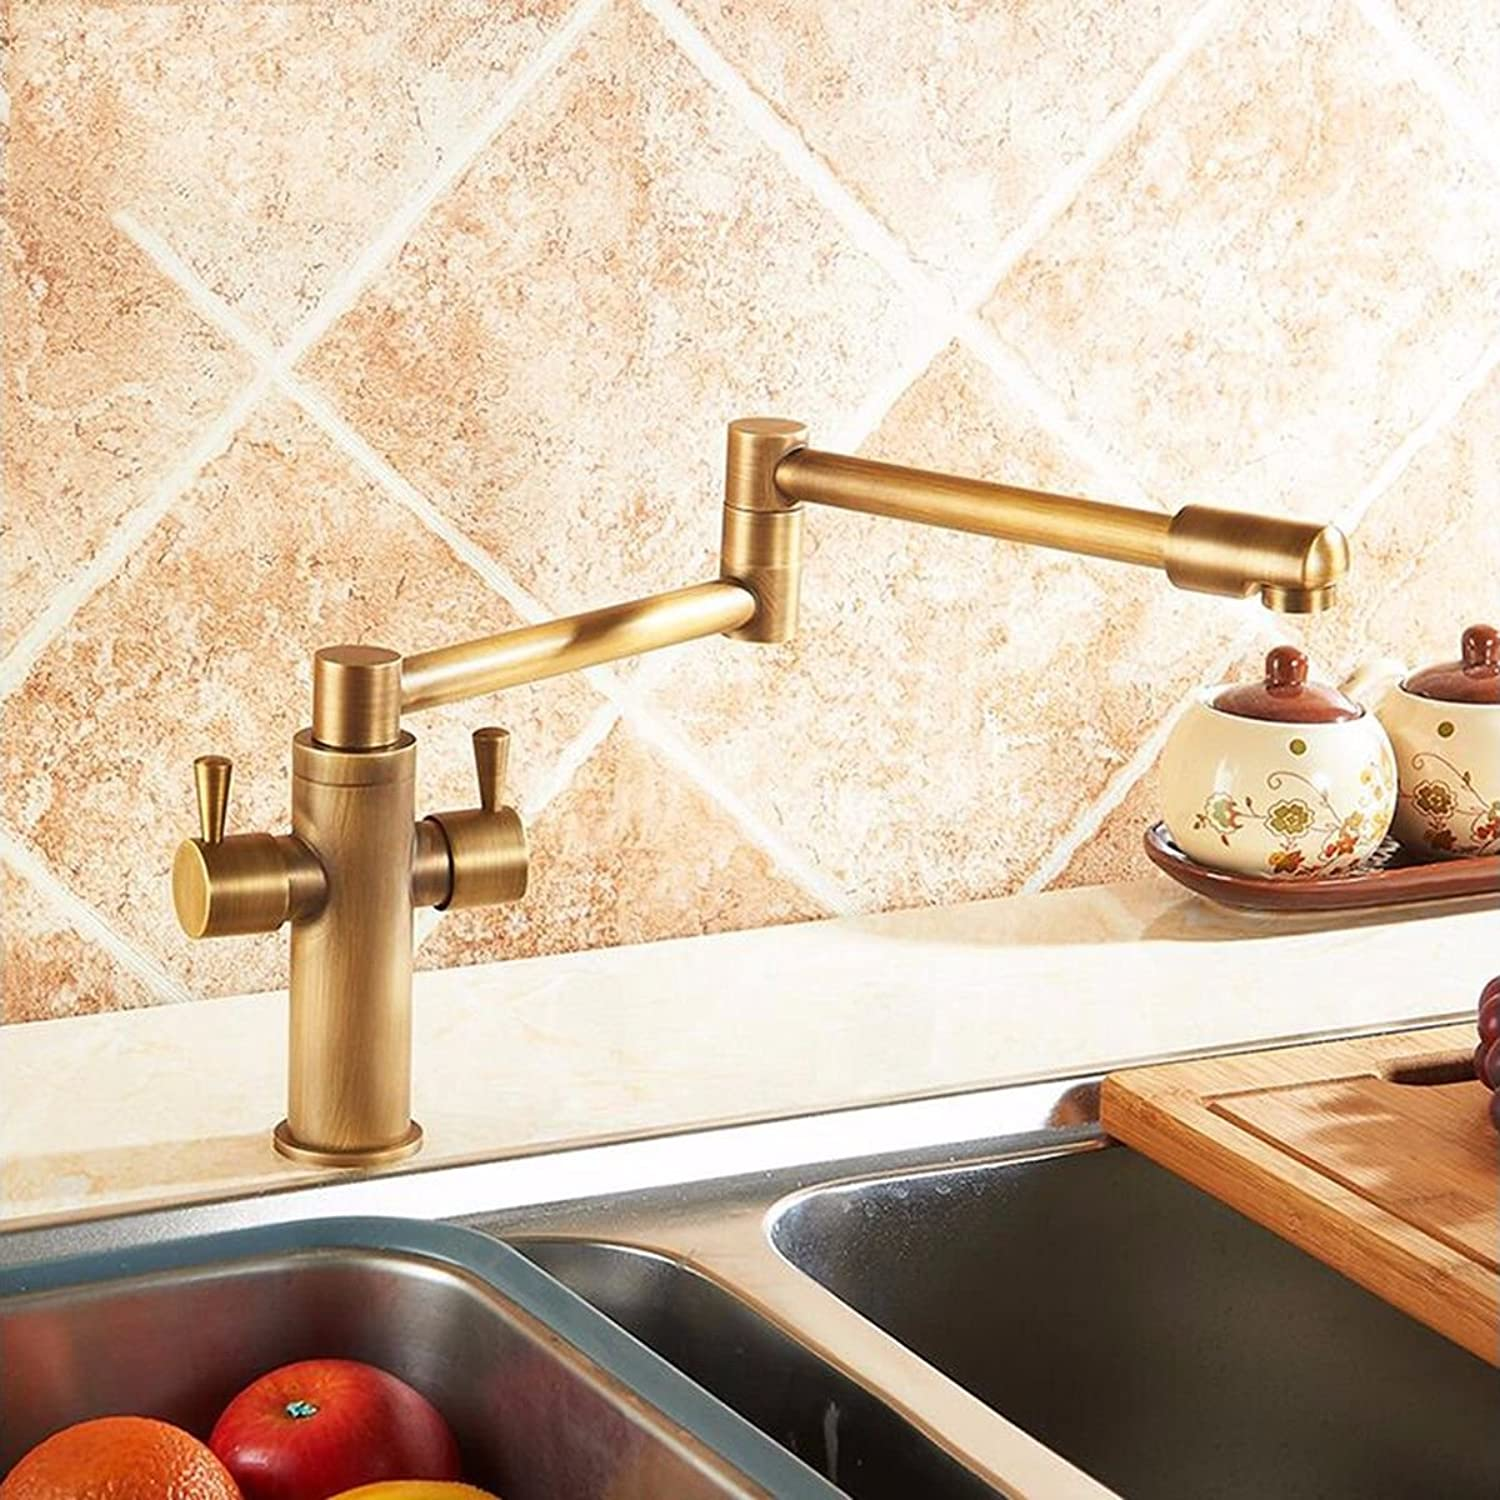 Lpophy Bathroom Bathroom Bathroom Sink Mixer Taps Faucet Bath Waterfall Cold and Hot Water Tap for Washroom Bathroom and Kitchen Antique Copper Folding Telescopic Hot and Cold 360 redation 1a1c39